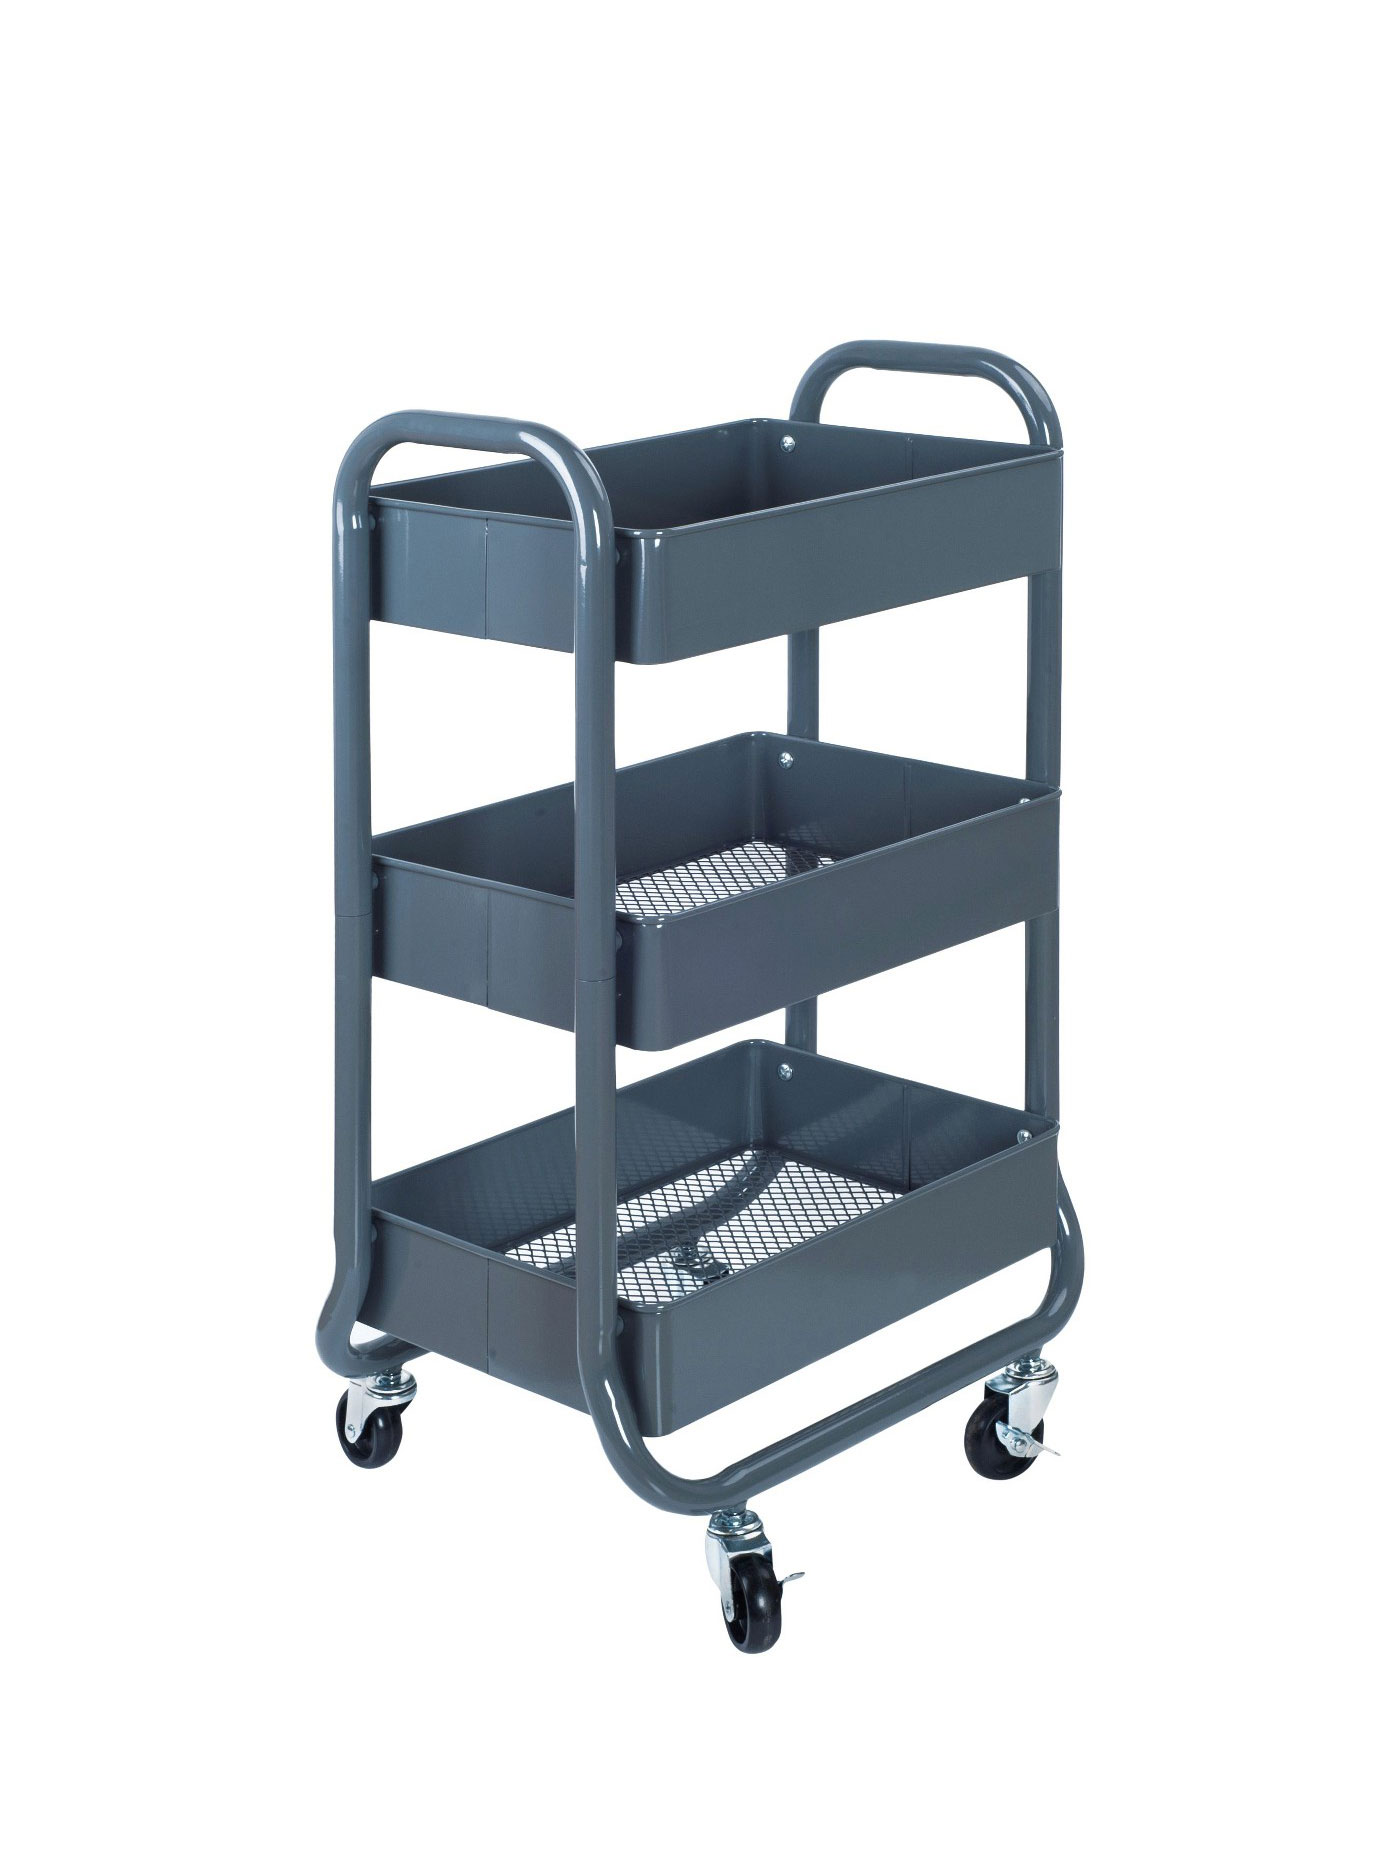 Less Than 30 Room Essentials 3 Tier Rolling Cart In Gray